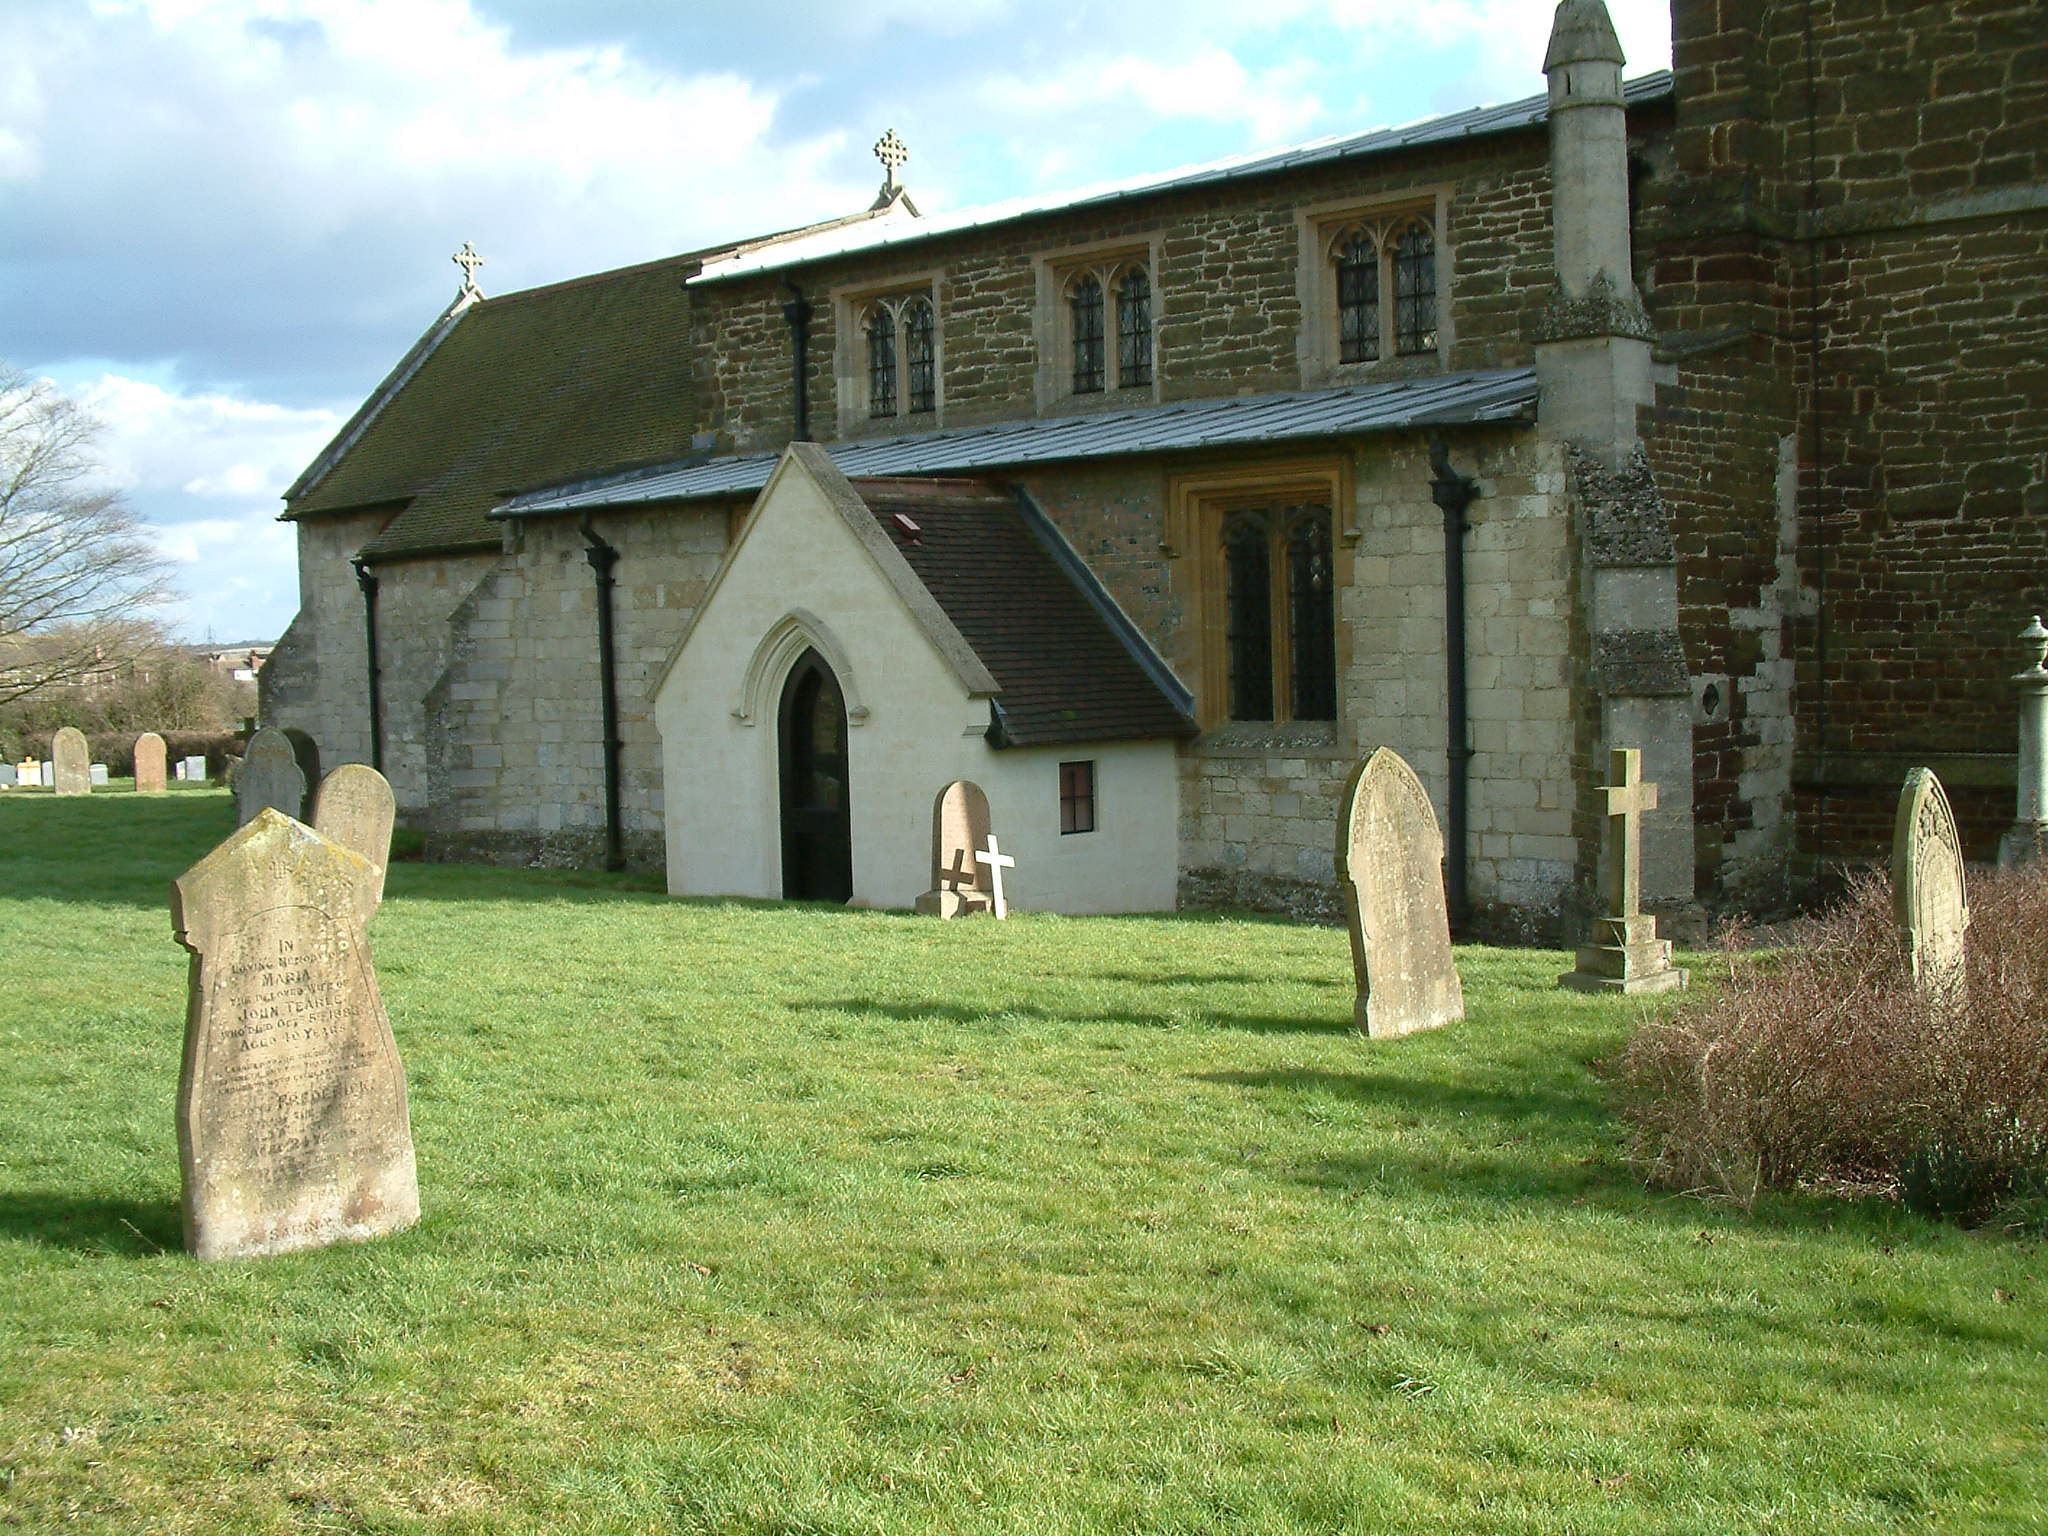 The memorials to John 1840 and James 1827 are close together.